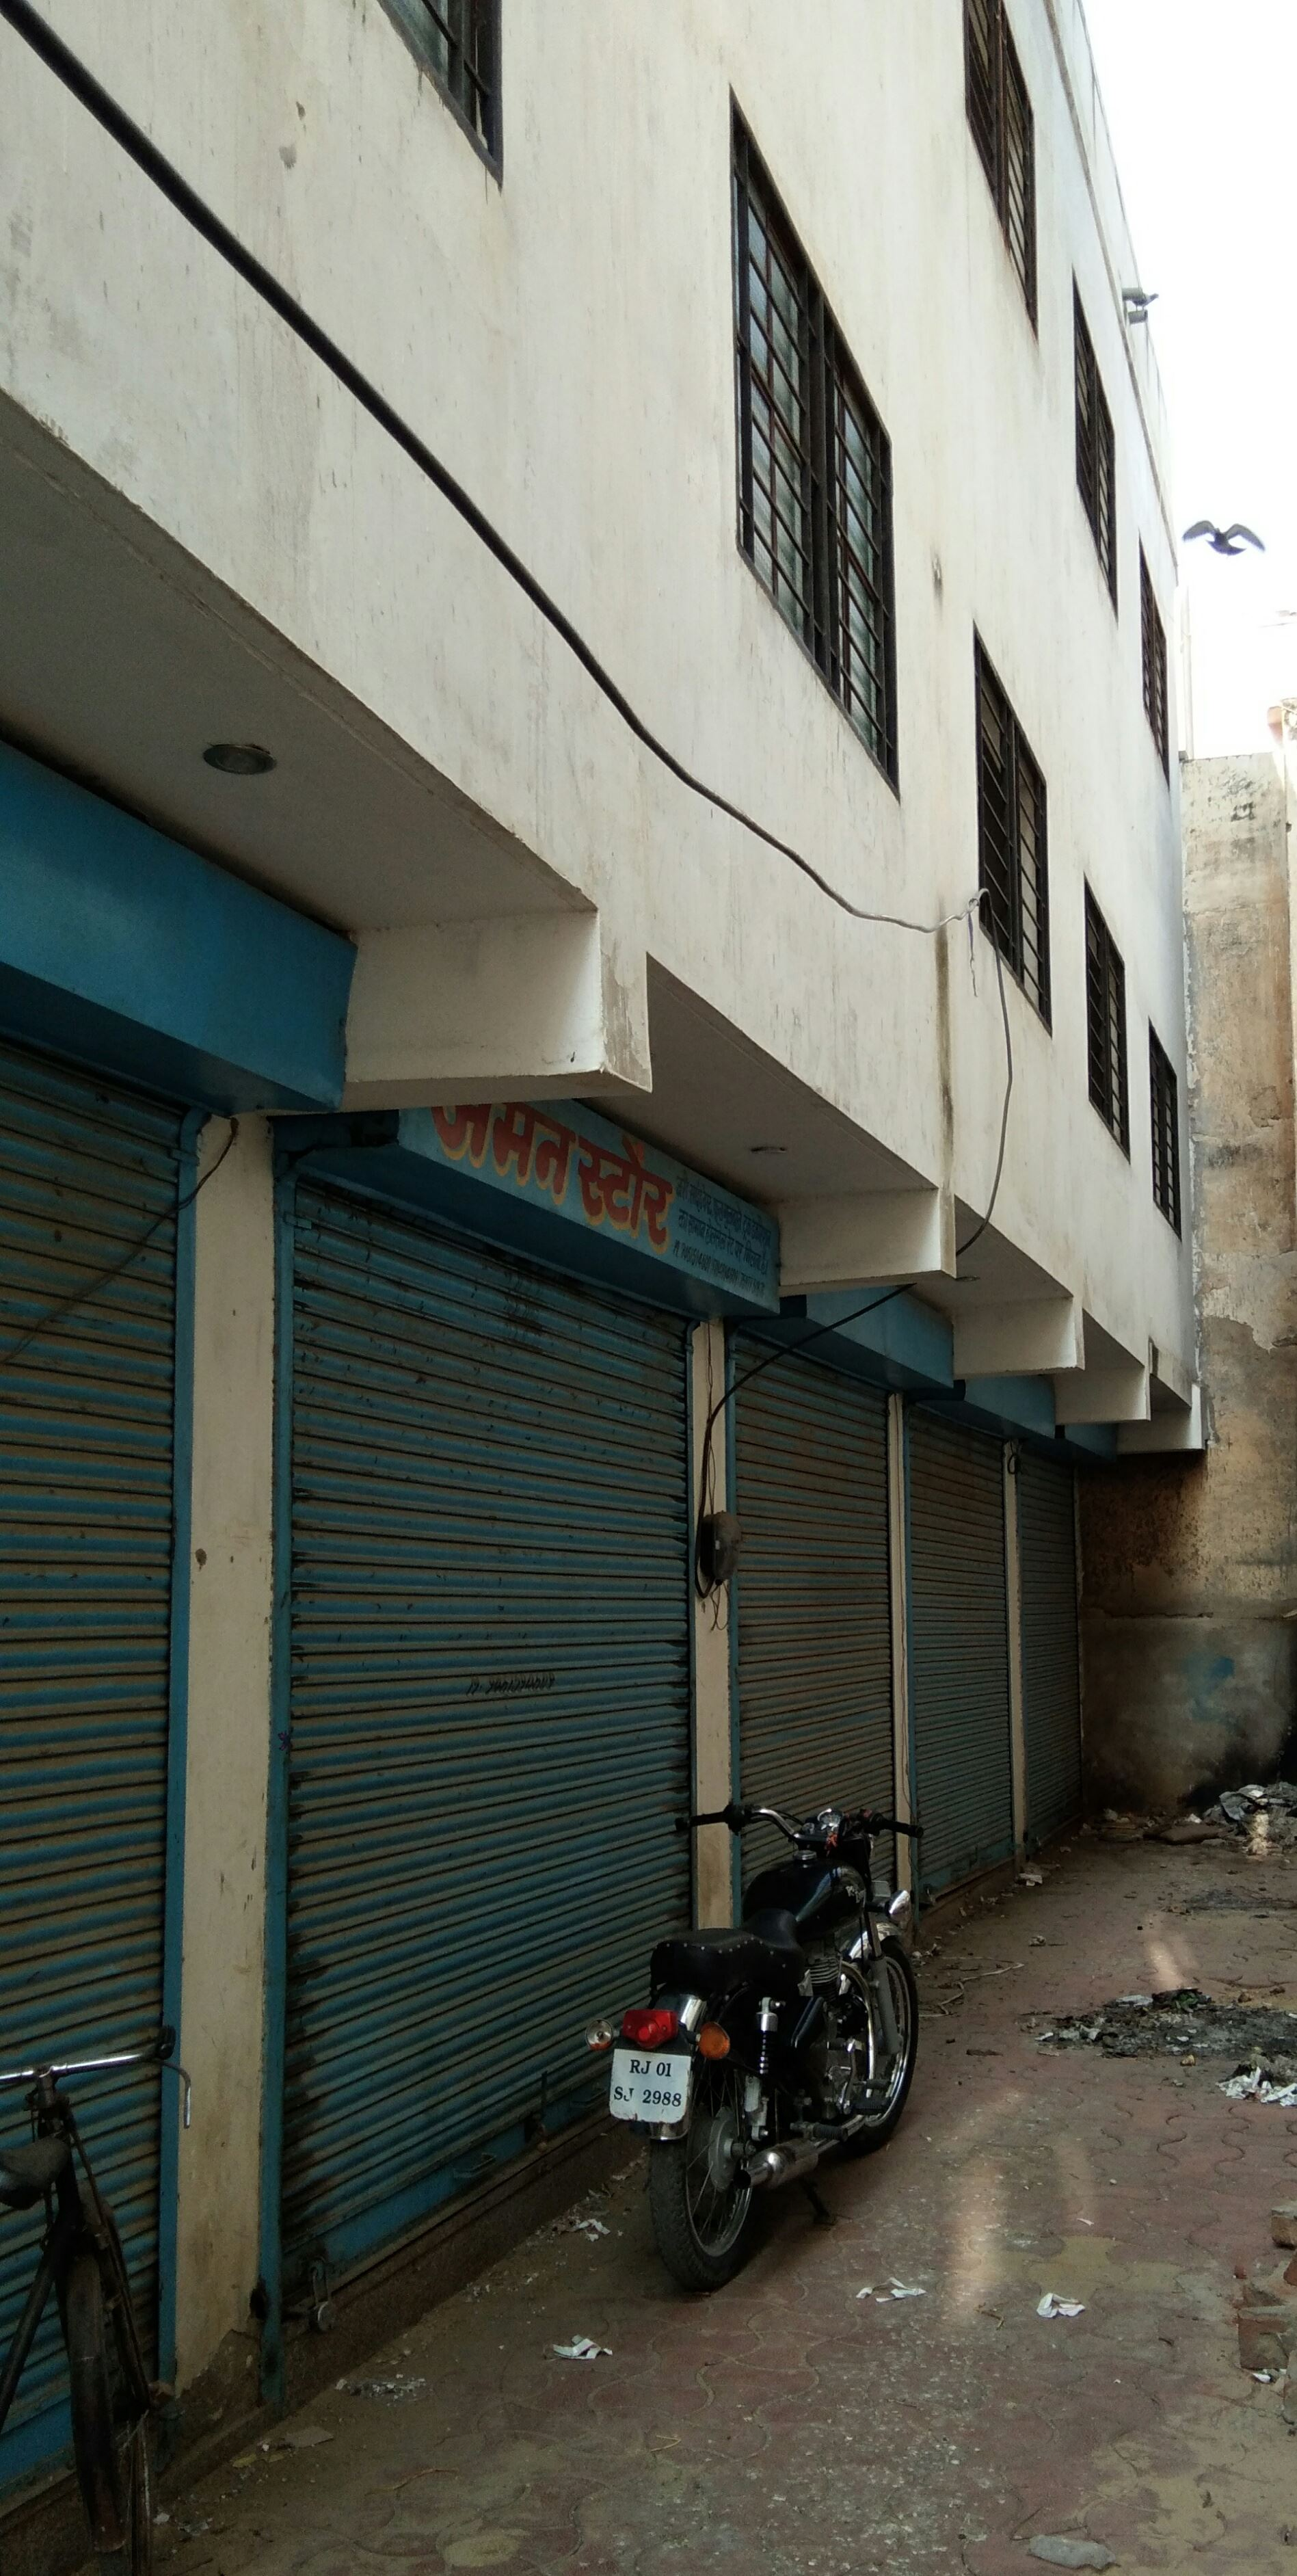 Space-for-rent-ajmer-in-Hathi-Bhata-Ajmer